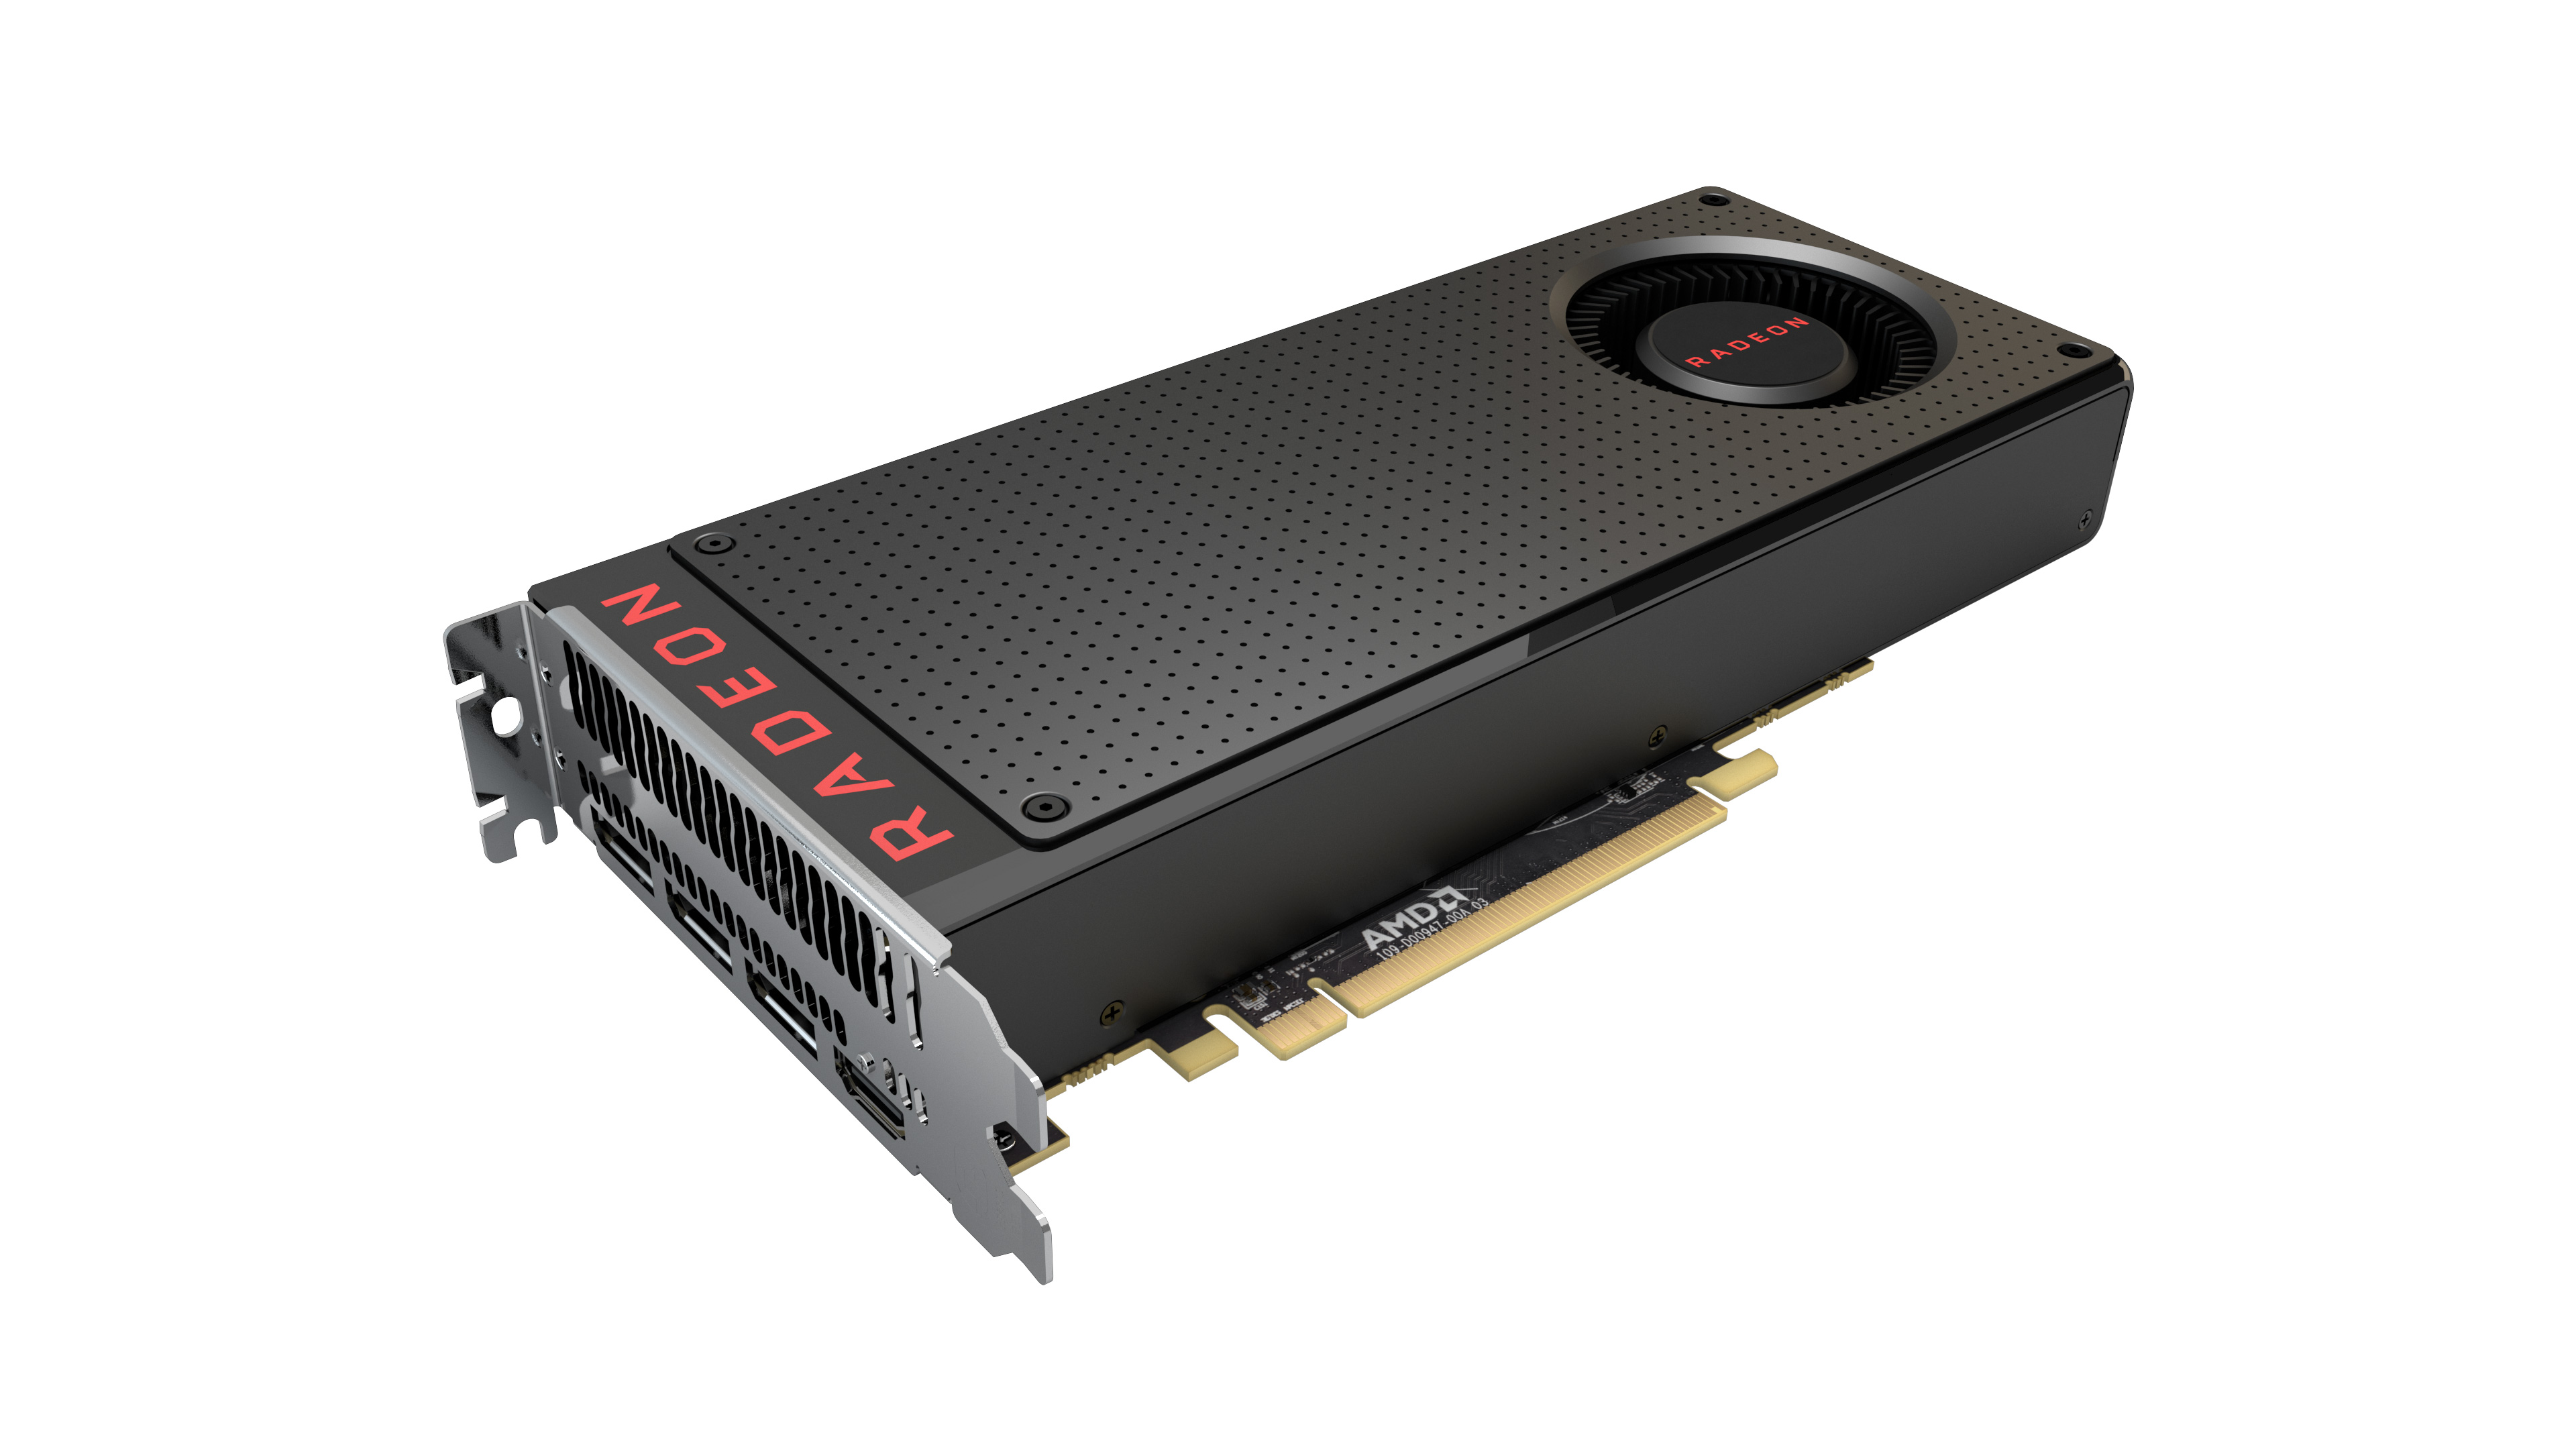 Image result for AMD Radeon RX 480 8GB